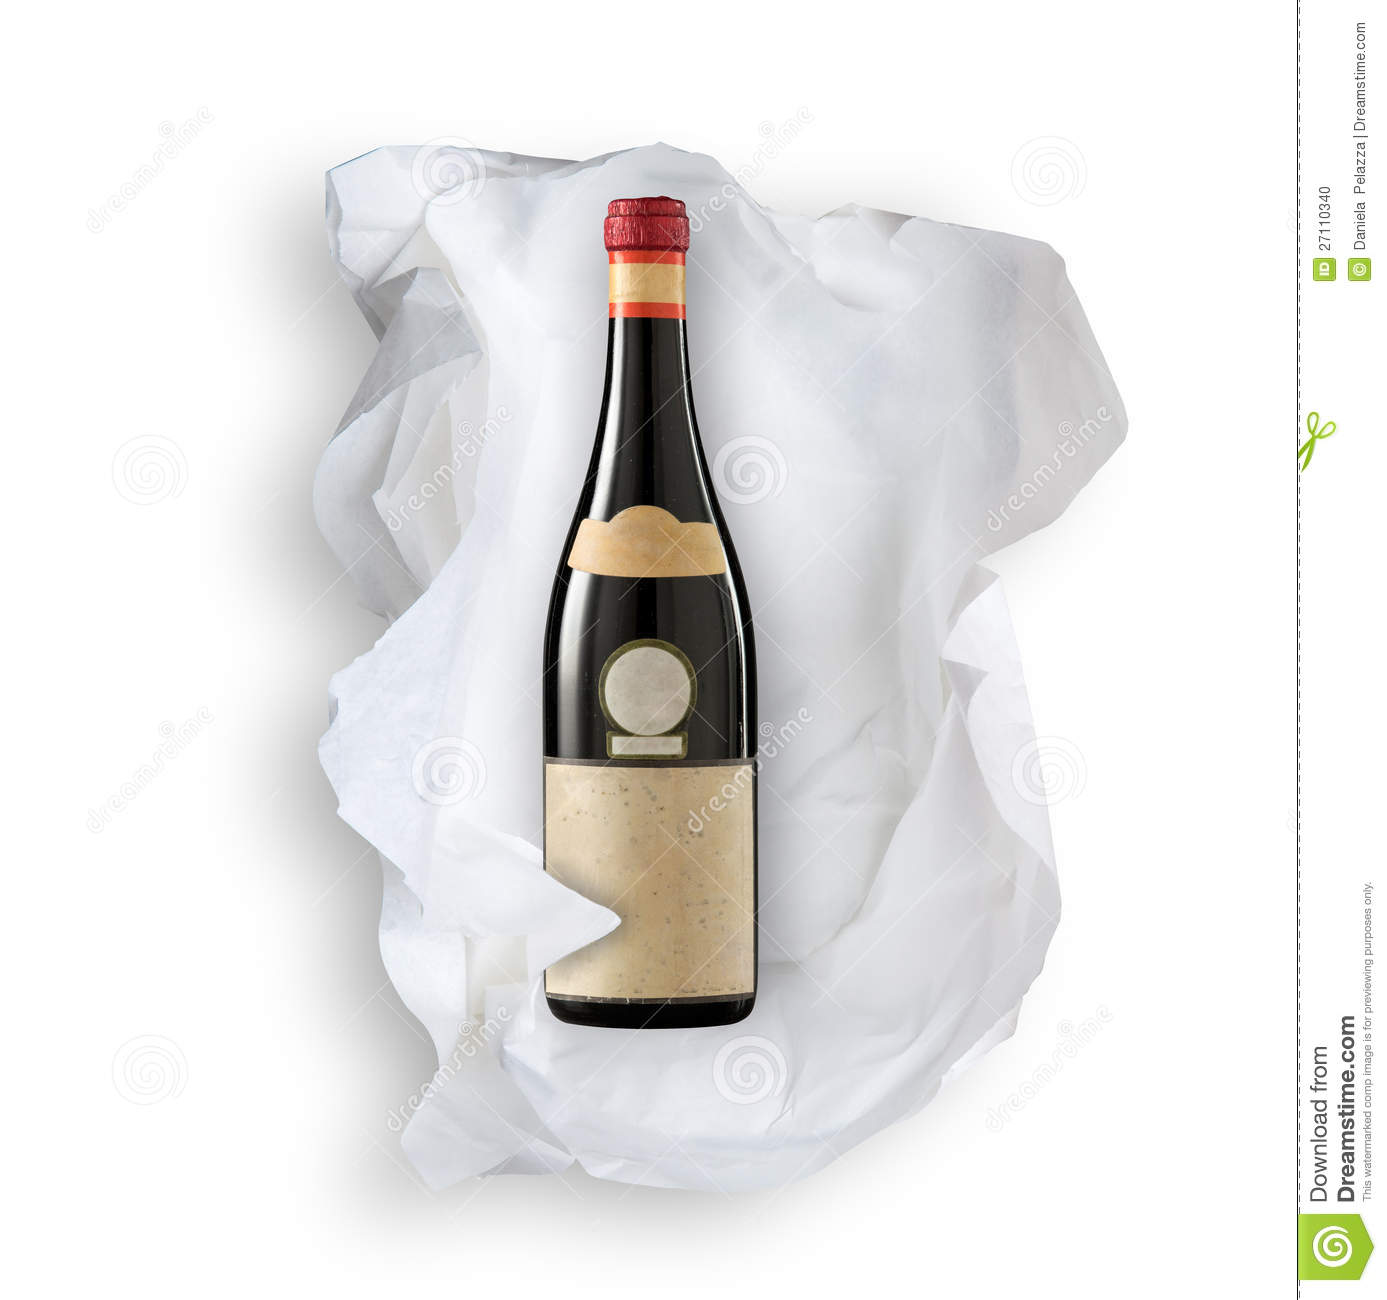 papier de soie de soie et bouteille de vin photo stock image du cave personne 27110340. Black Bedroom Furniture Sets. Home Design Ideas